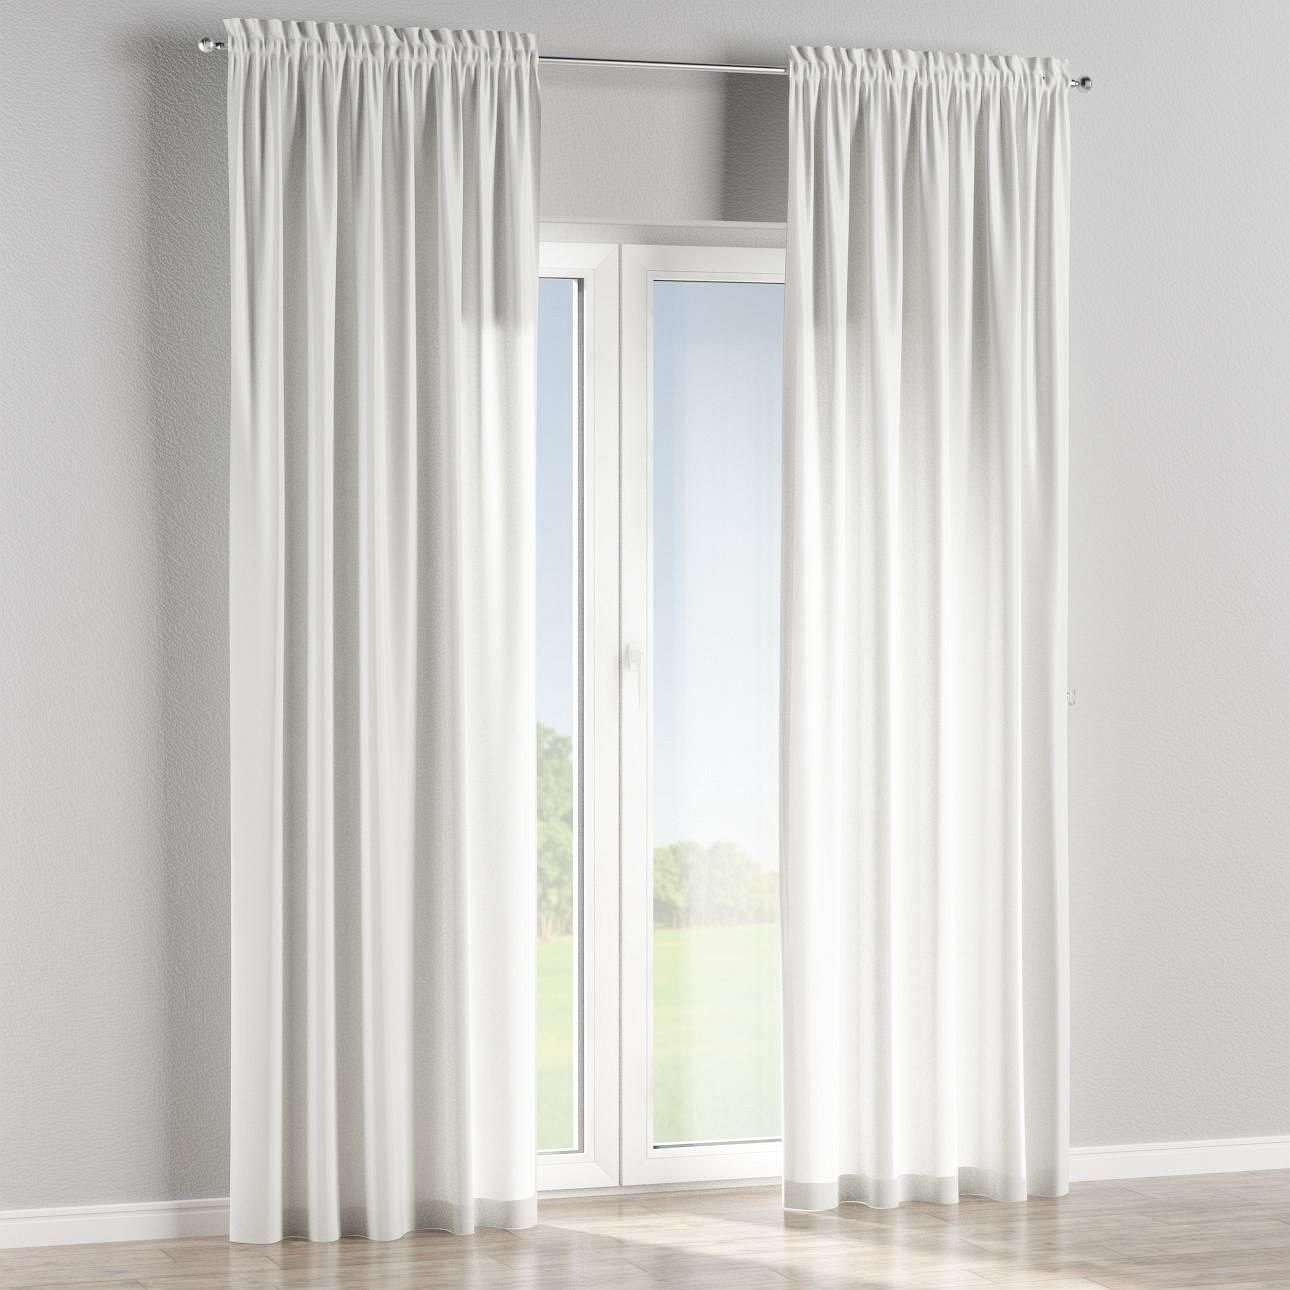 Slot and frill curtains in collection Marina, fabric: 140-14